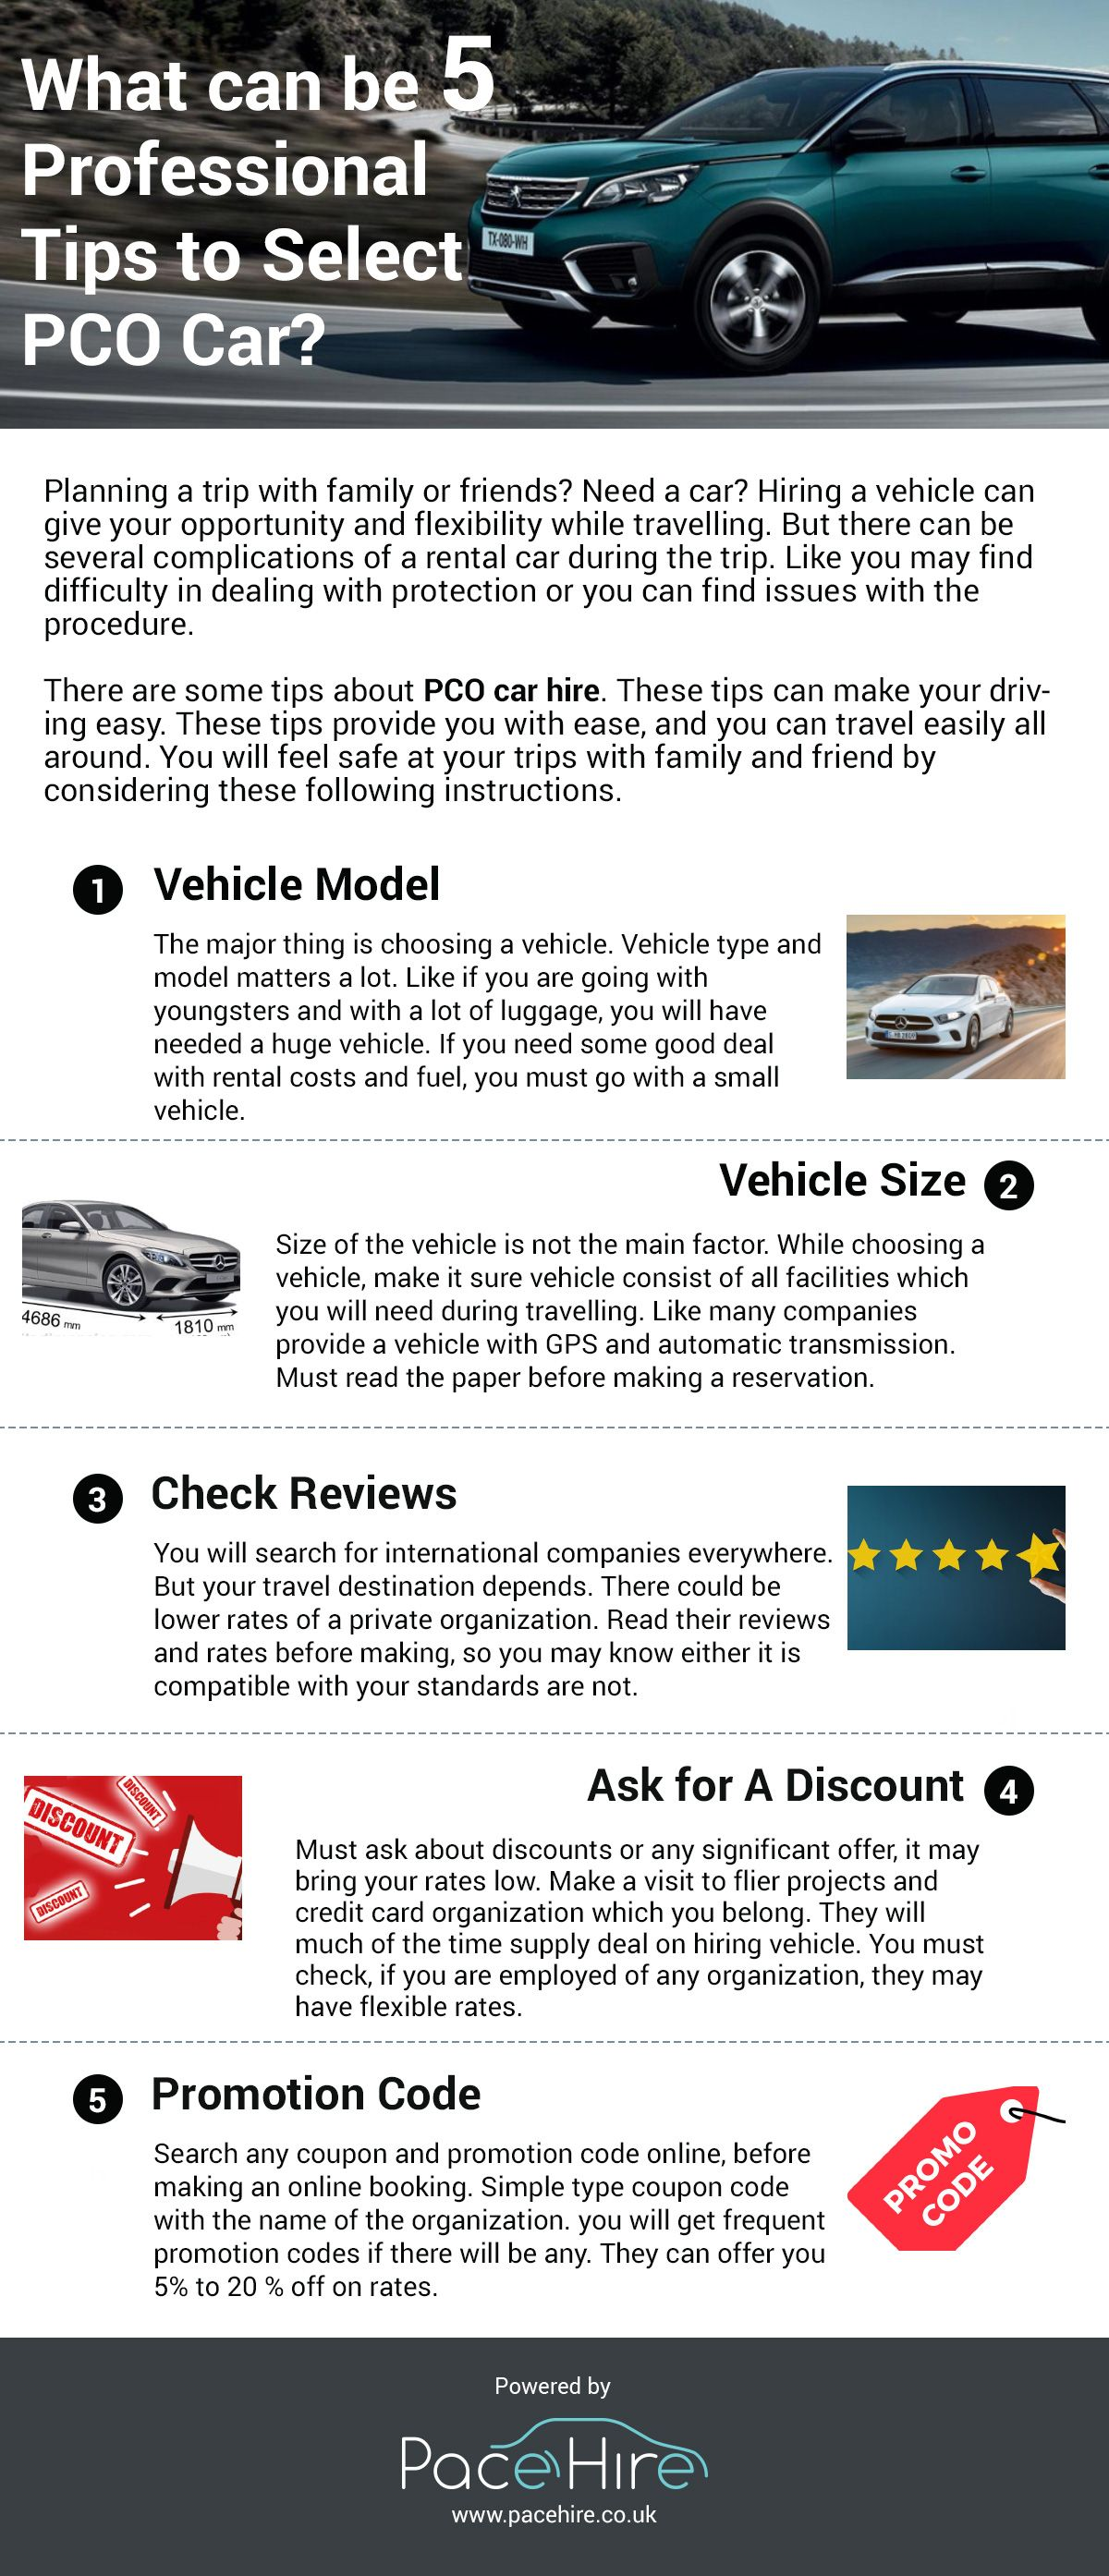 There Are Some Tips About Pco Car Hire These Tips Can Make Your Driving Easy These Tips Provide You With Ease And You Can Travel Easily Car Hire Hiring Car